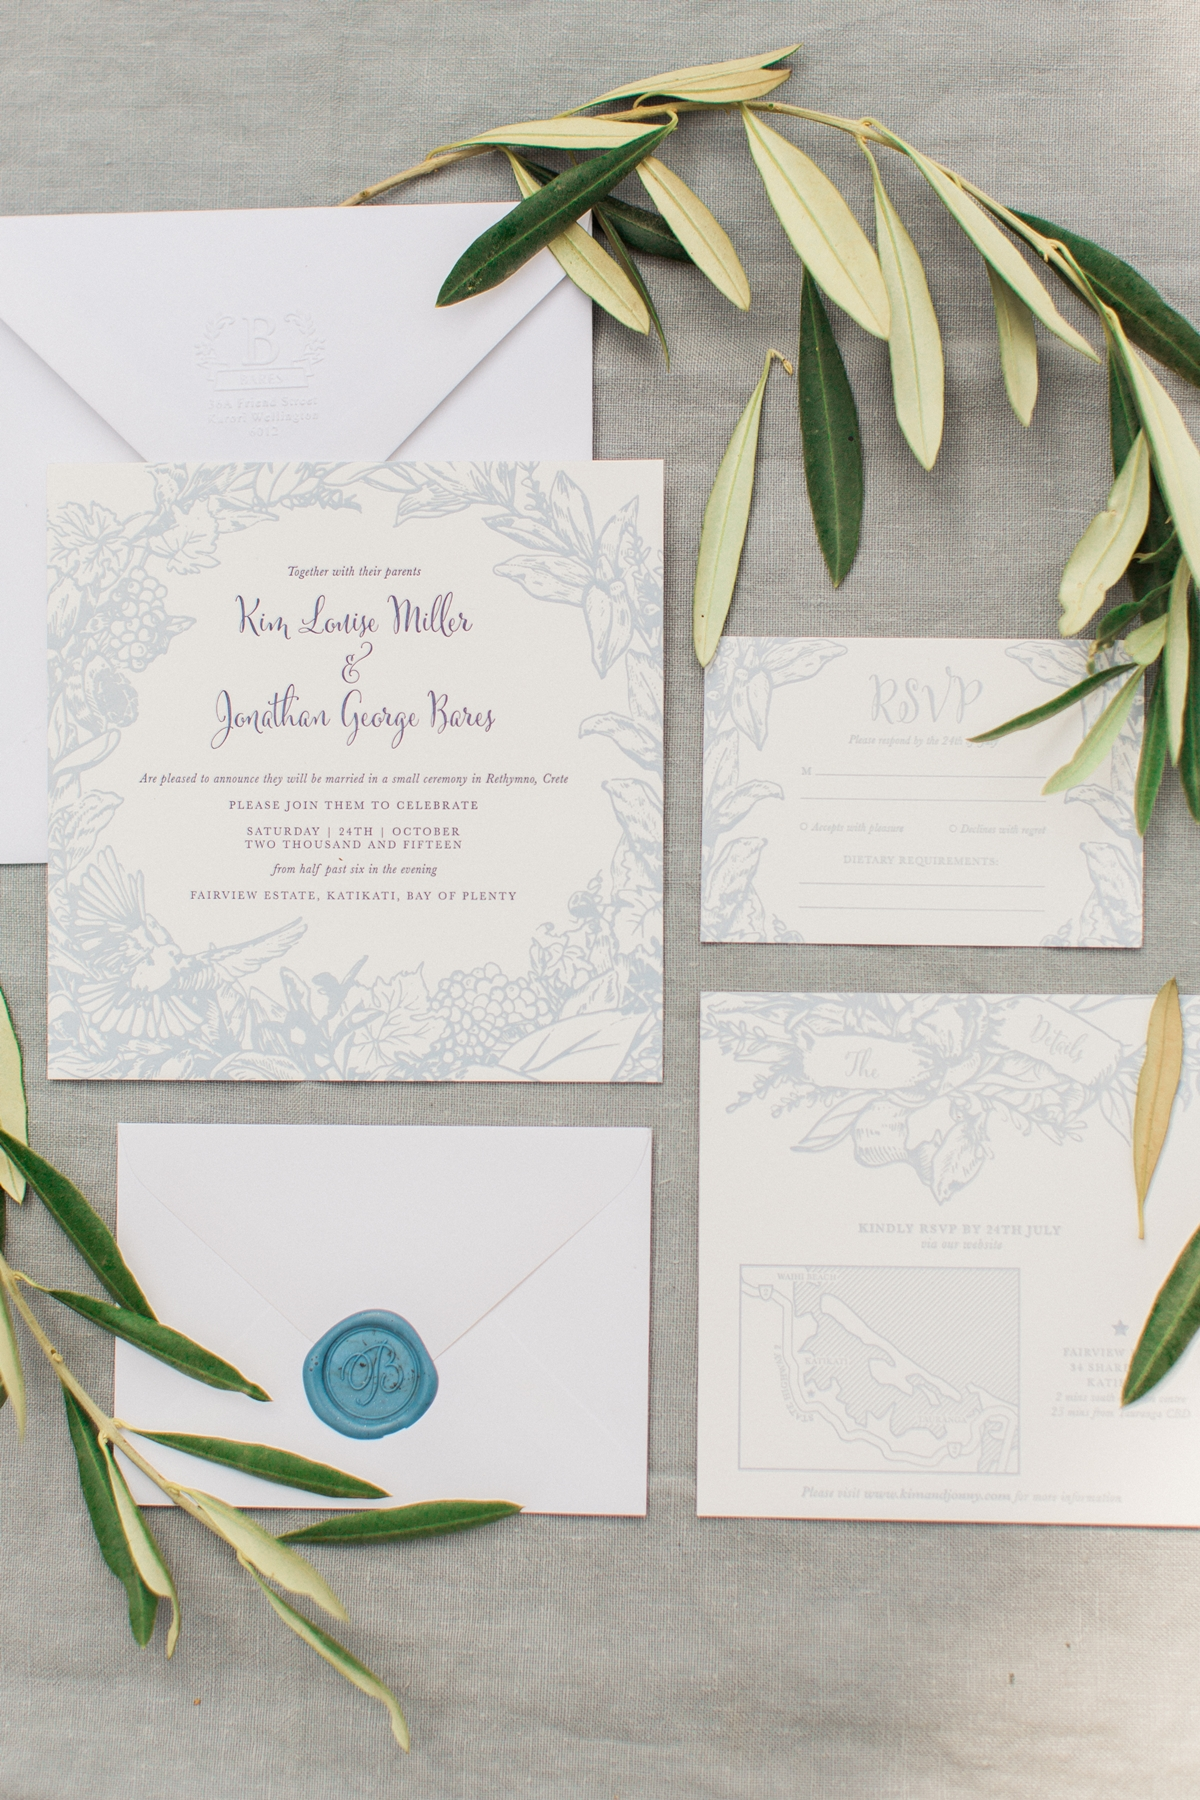 Ideas for rustic romantic wedding invitations